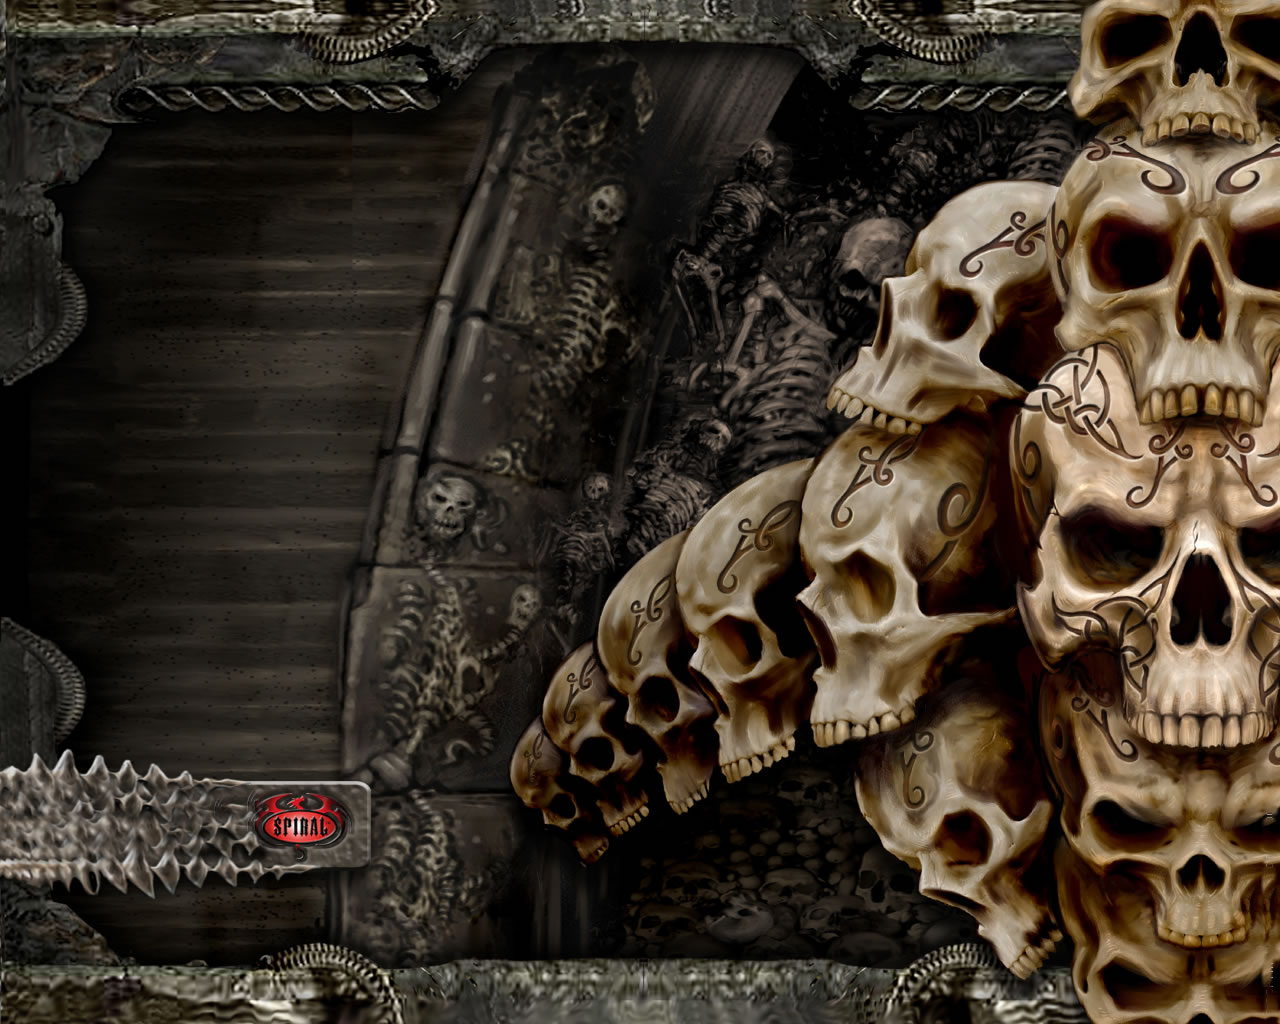 Tag horror wallpapers wallpapers skull horror scream black gothic